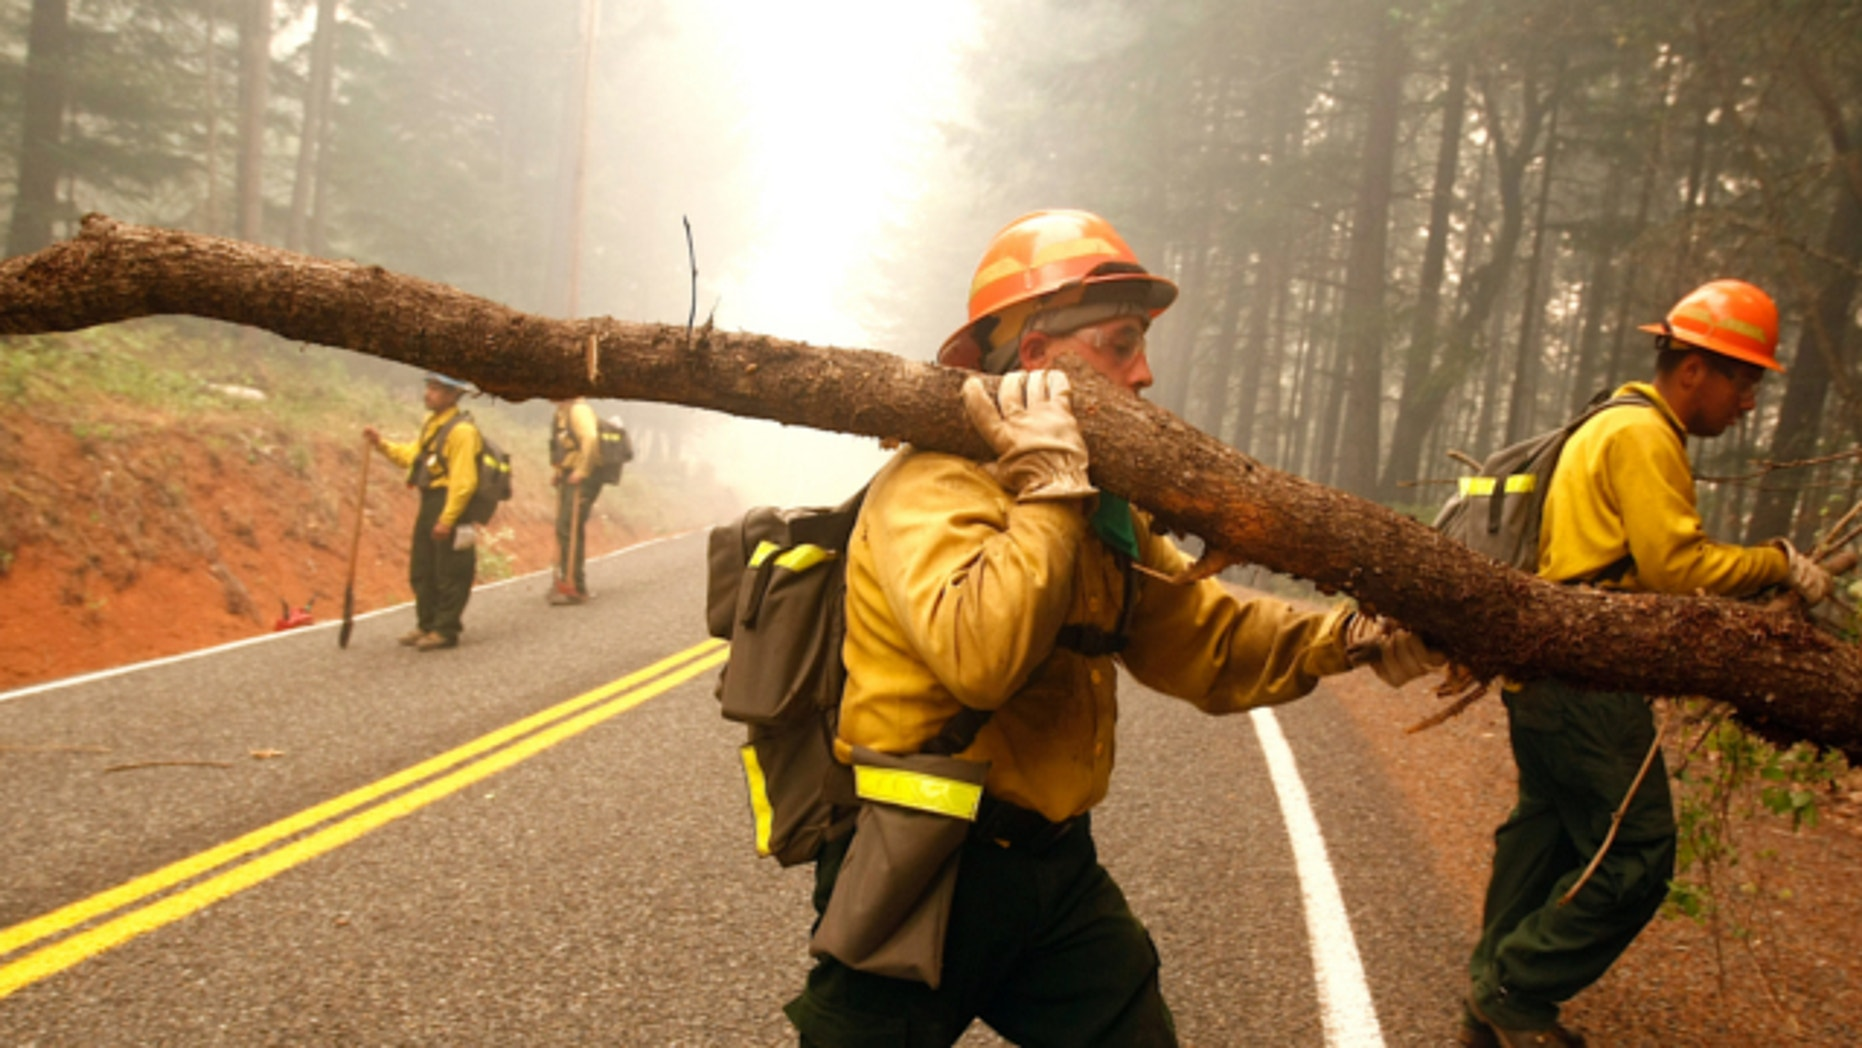 July 31, 2013: Dalles, Ore. firefighters Mario Carmona, middle, and Ismael Vega, right, help clear brush and trees near a home in Wolf Creek, Ore.